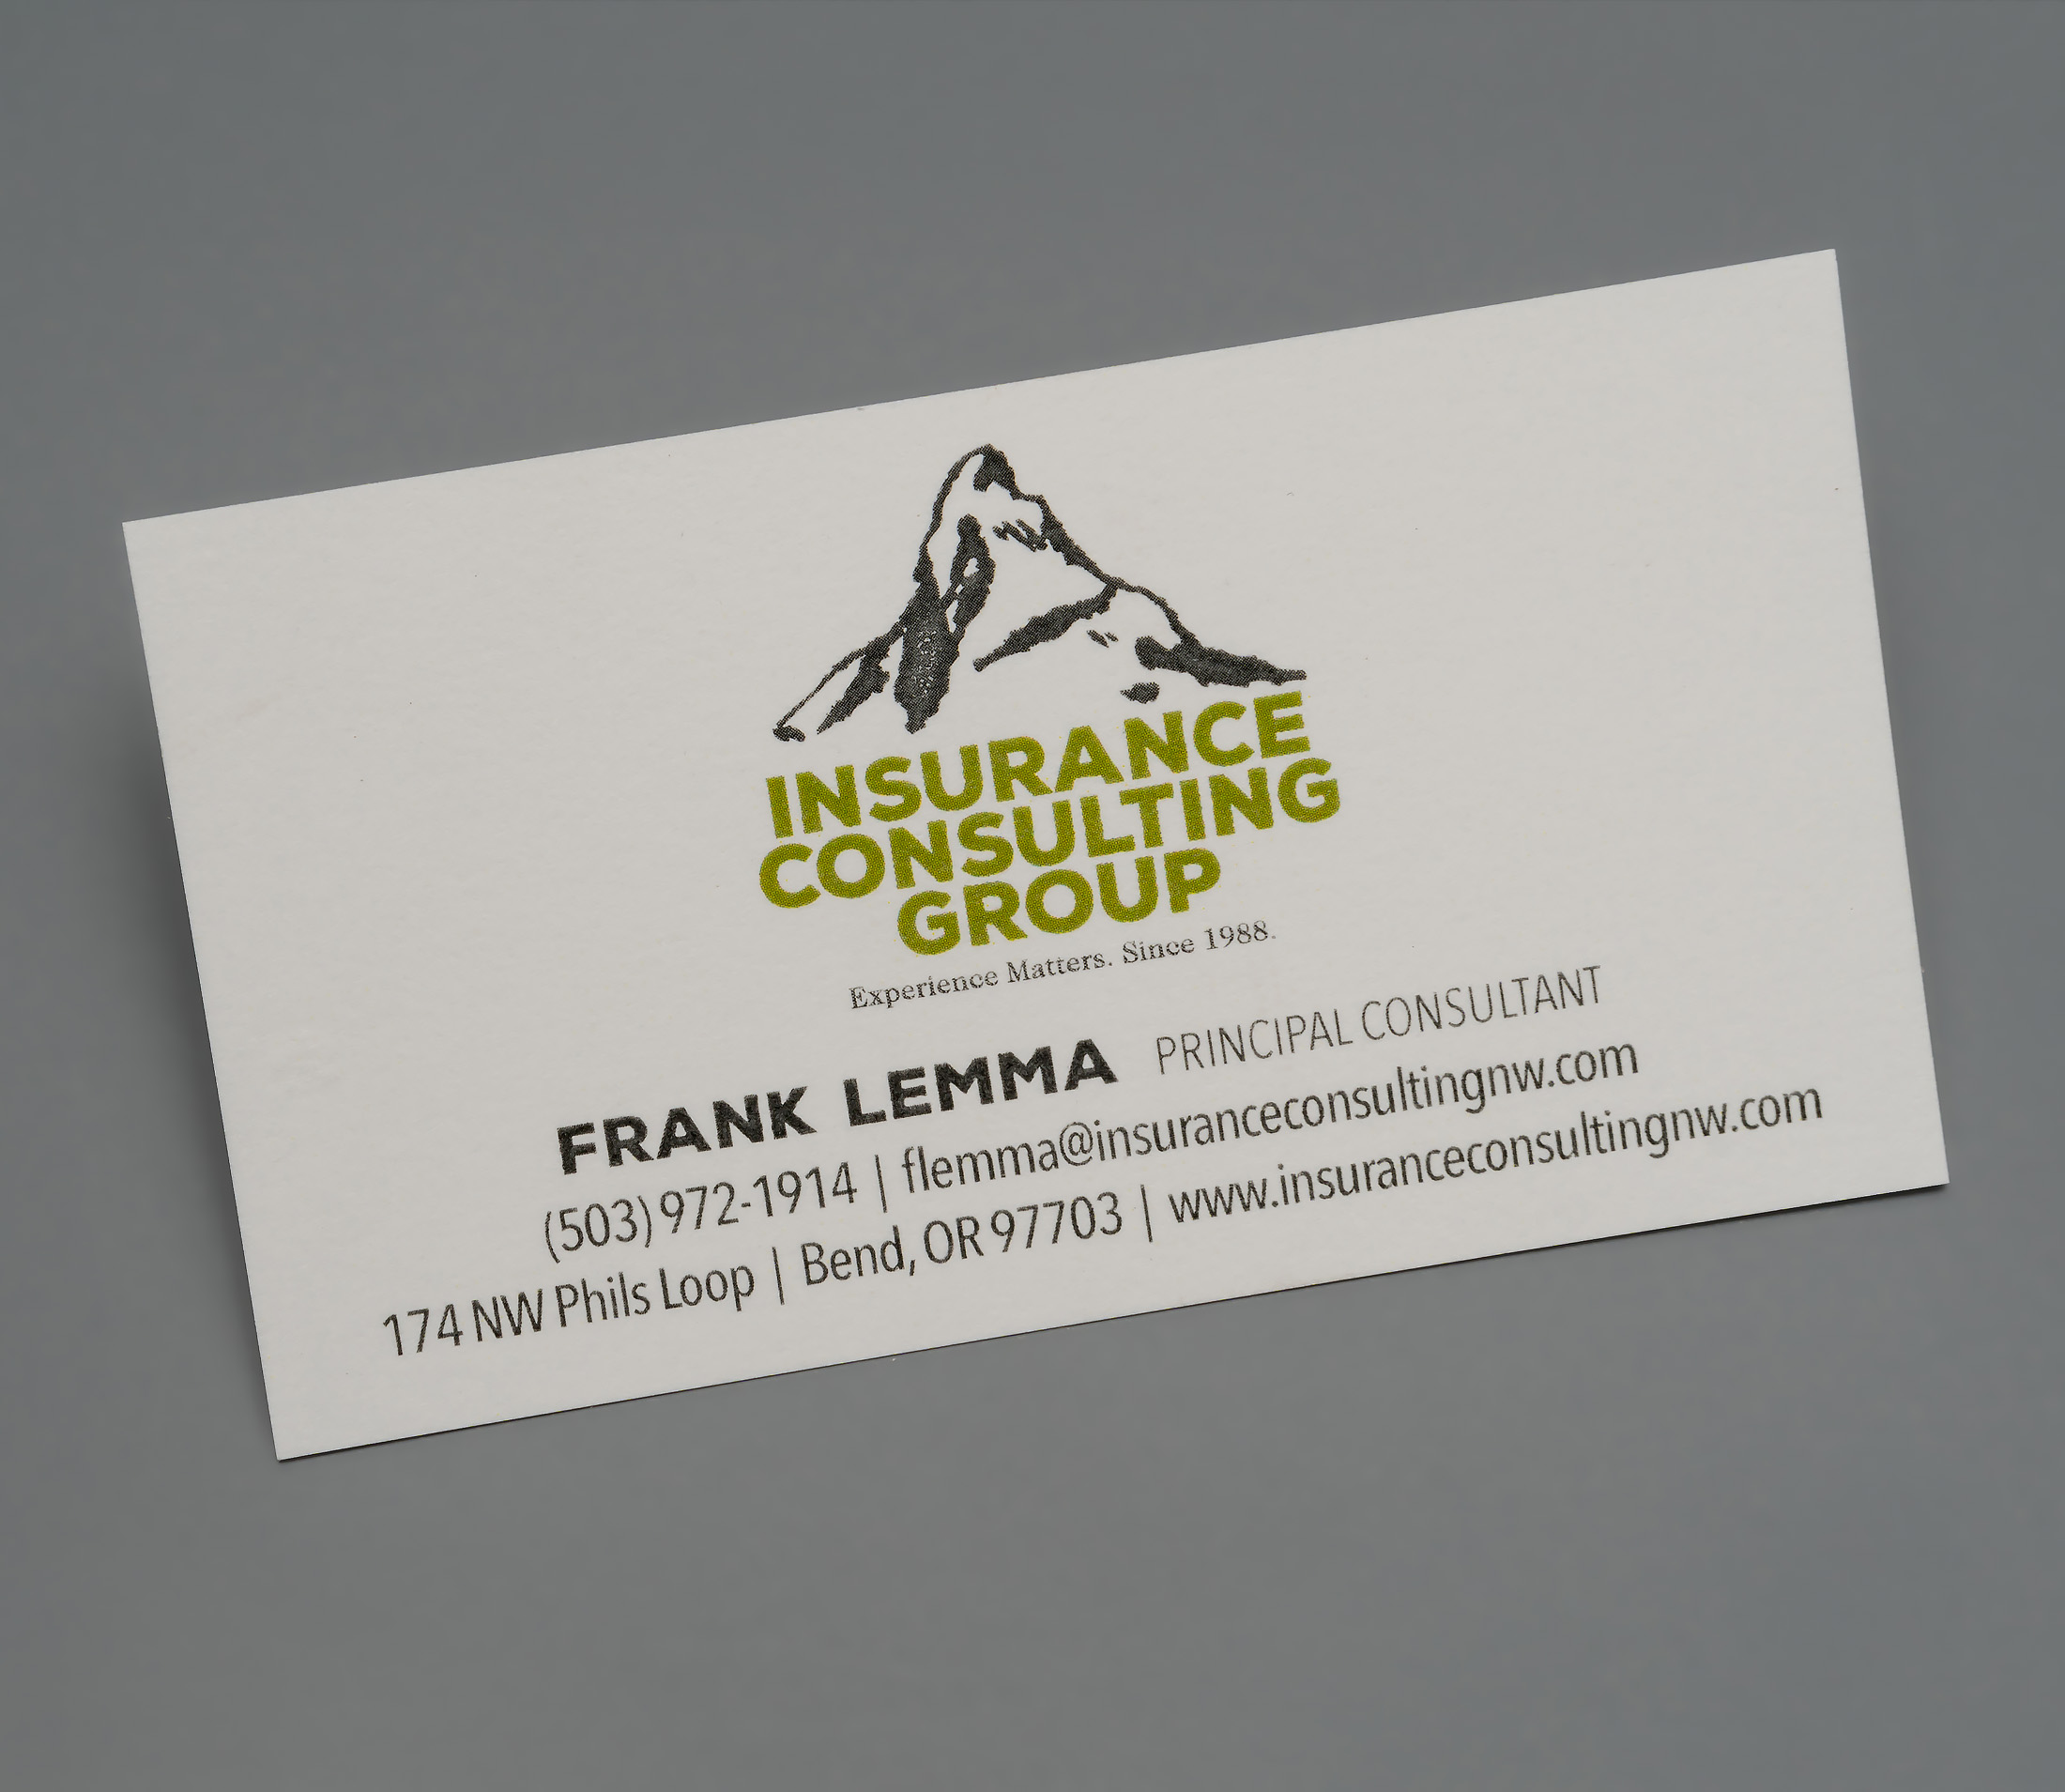 Insurance-Consulting-Group-biz-card